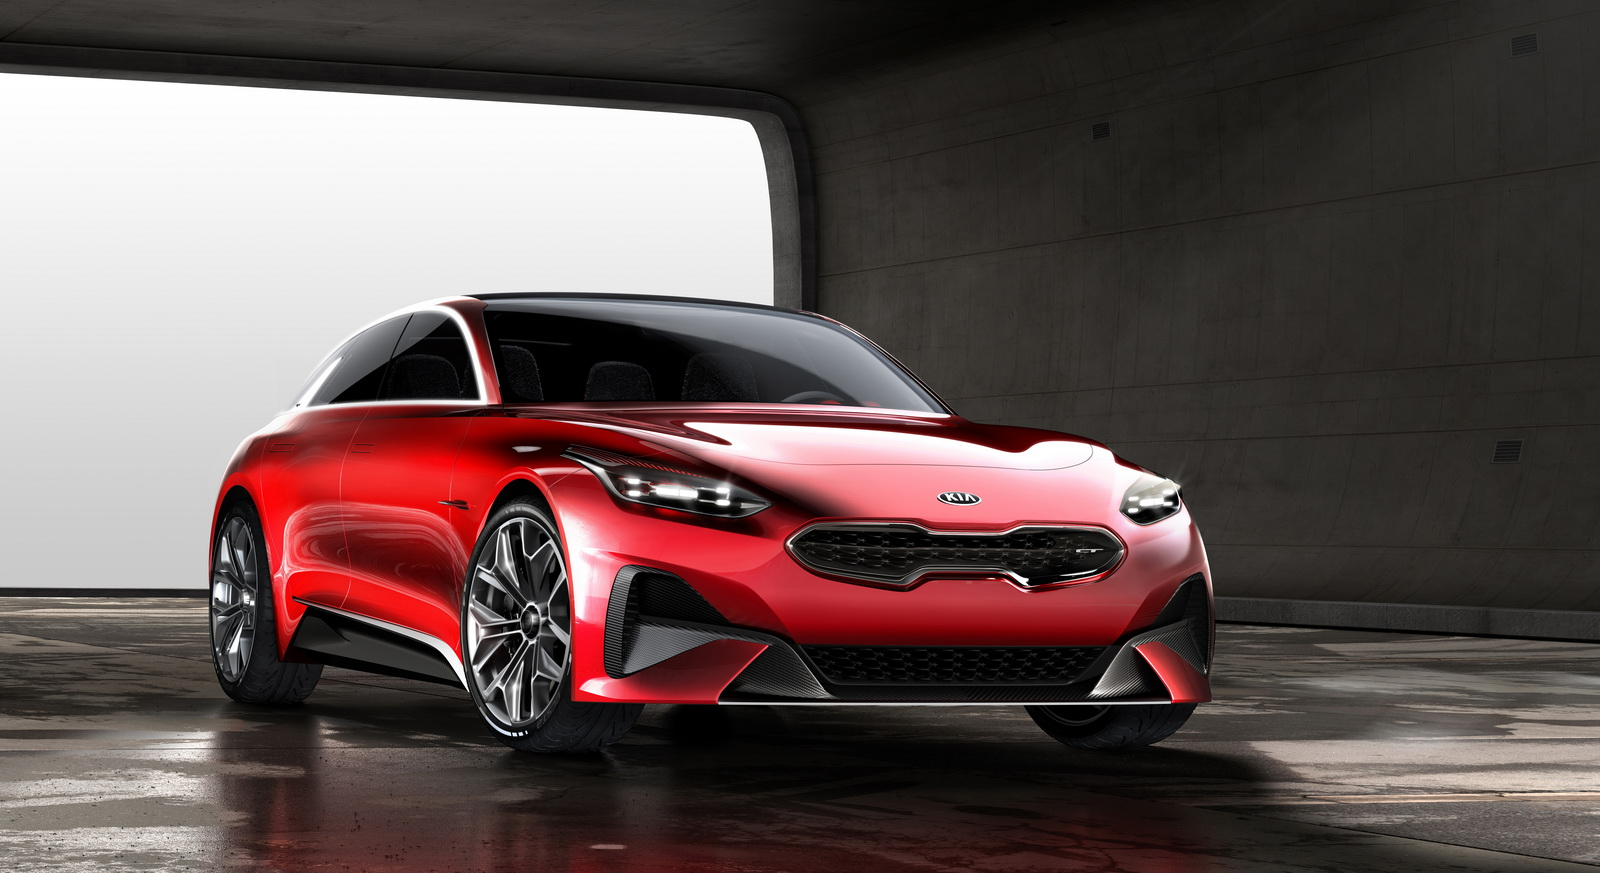 New Kia Proceed Concept Shooting Brake Previews The Next - 2022 Kia Forte 2.0 Horsepower Premier Specs, Electric Range